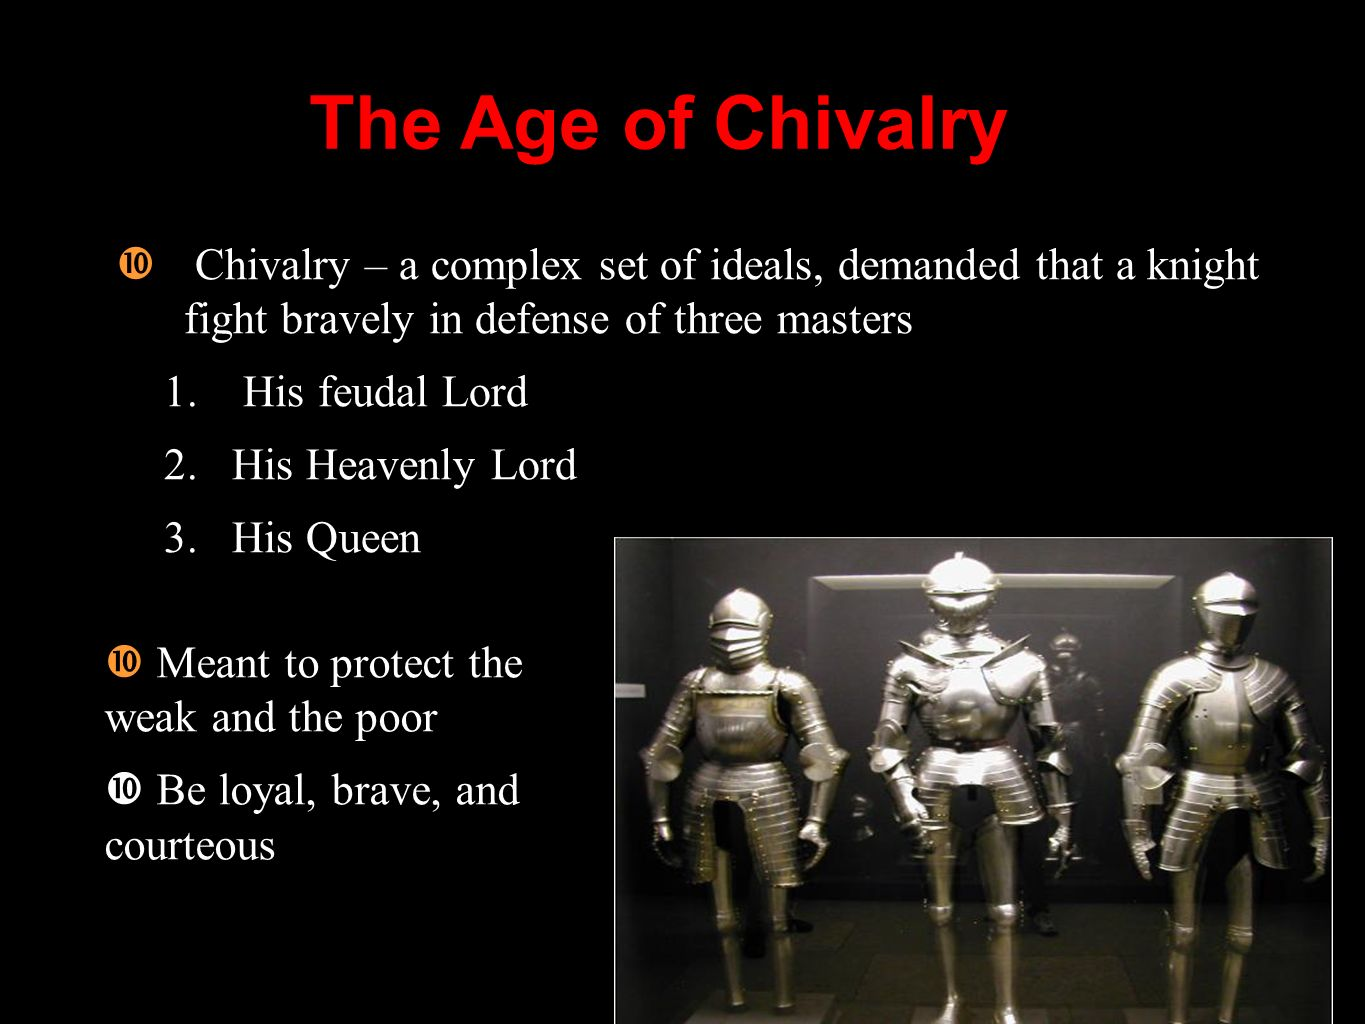 The Age of Chivalry Chivalry – a complex set of ideals, demanded that a knight fight bravely in defense of three masters.